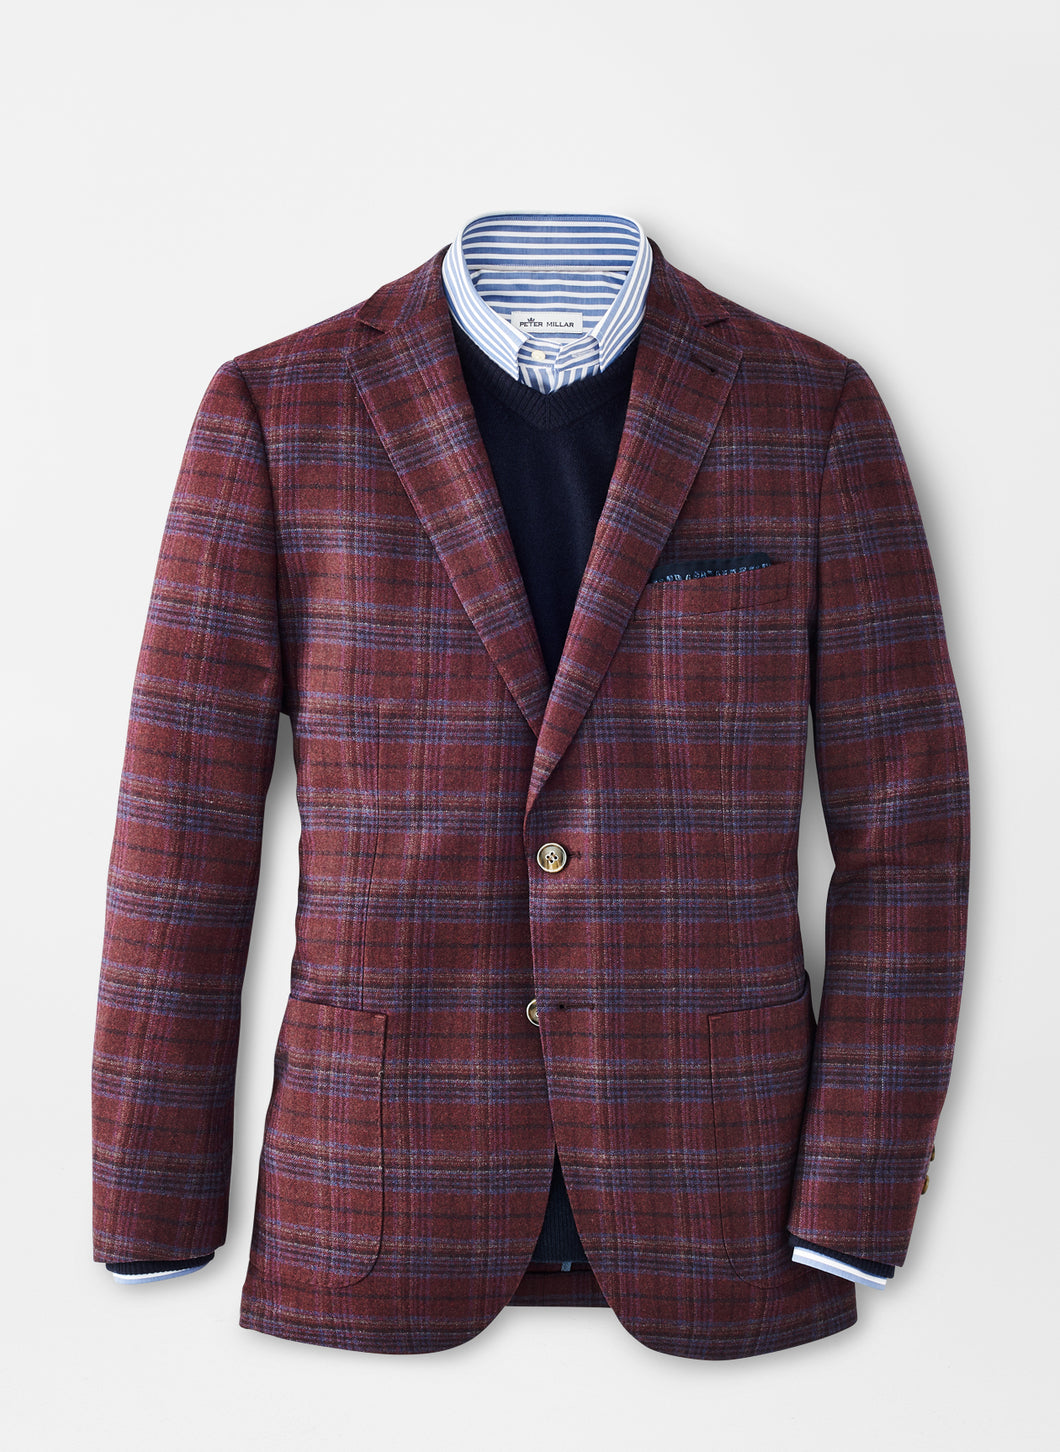 Peter Millar Autumn Plaid Soft Jacket in Currant